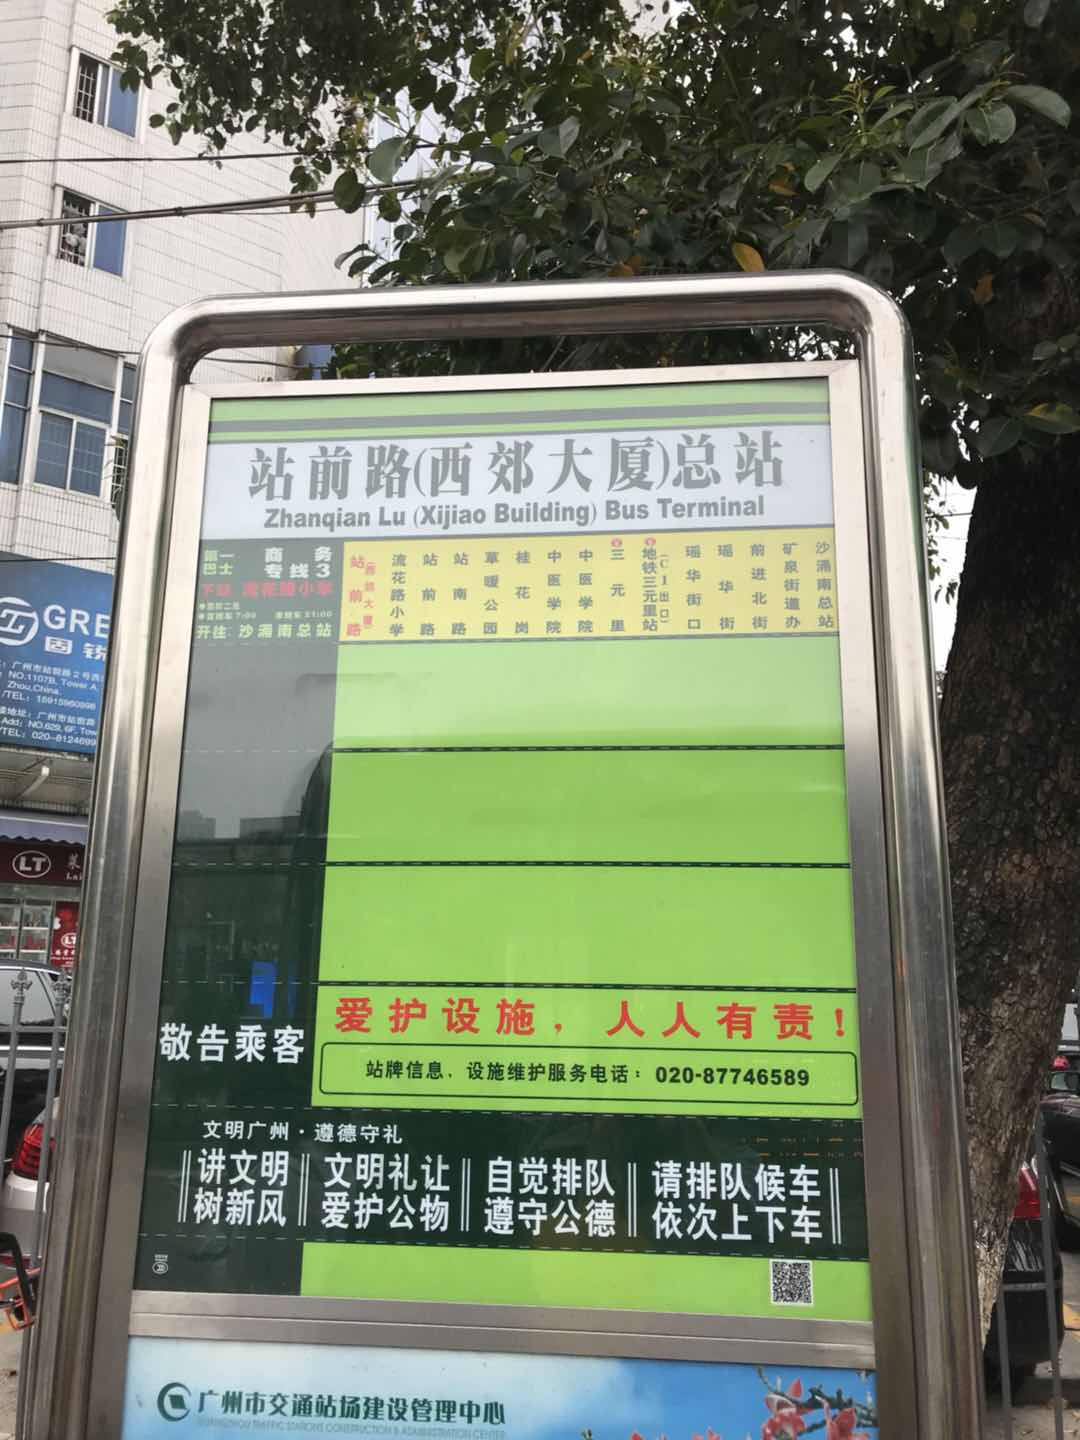 Nearest Bus Stop to Xijiao Building